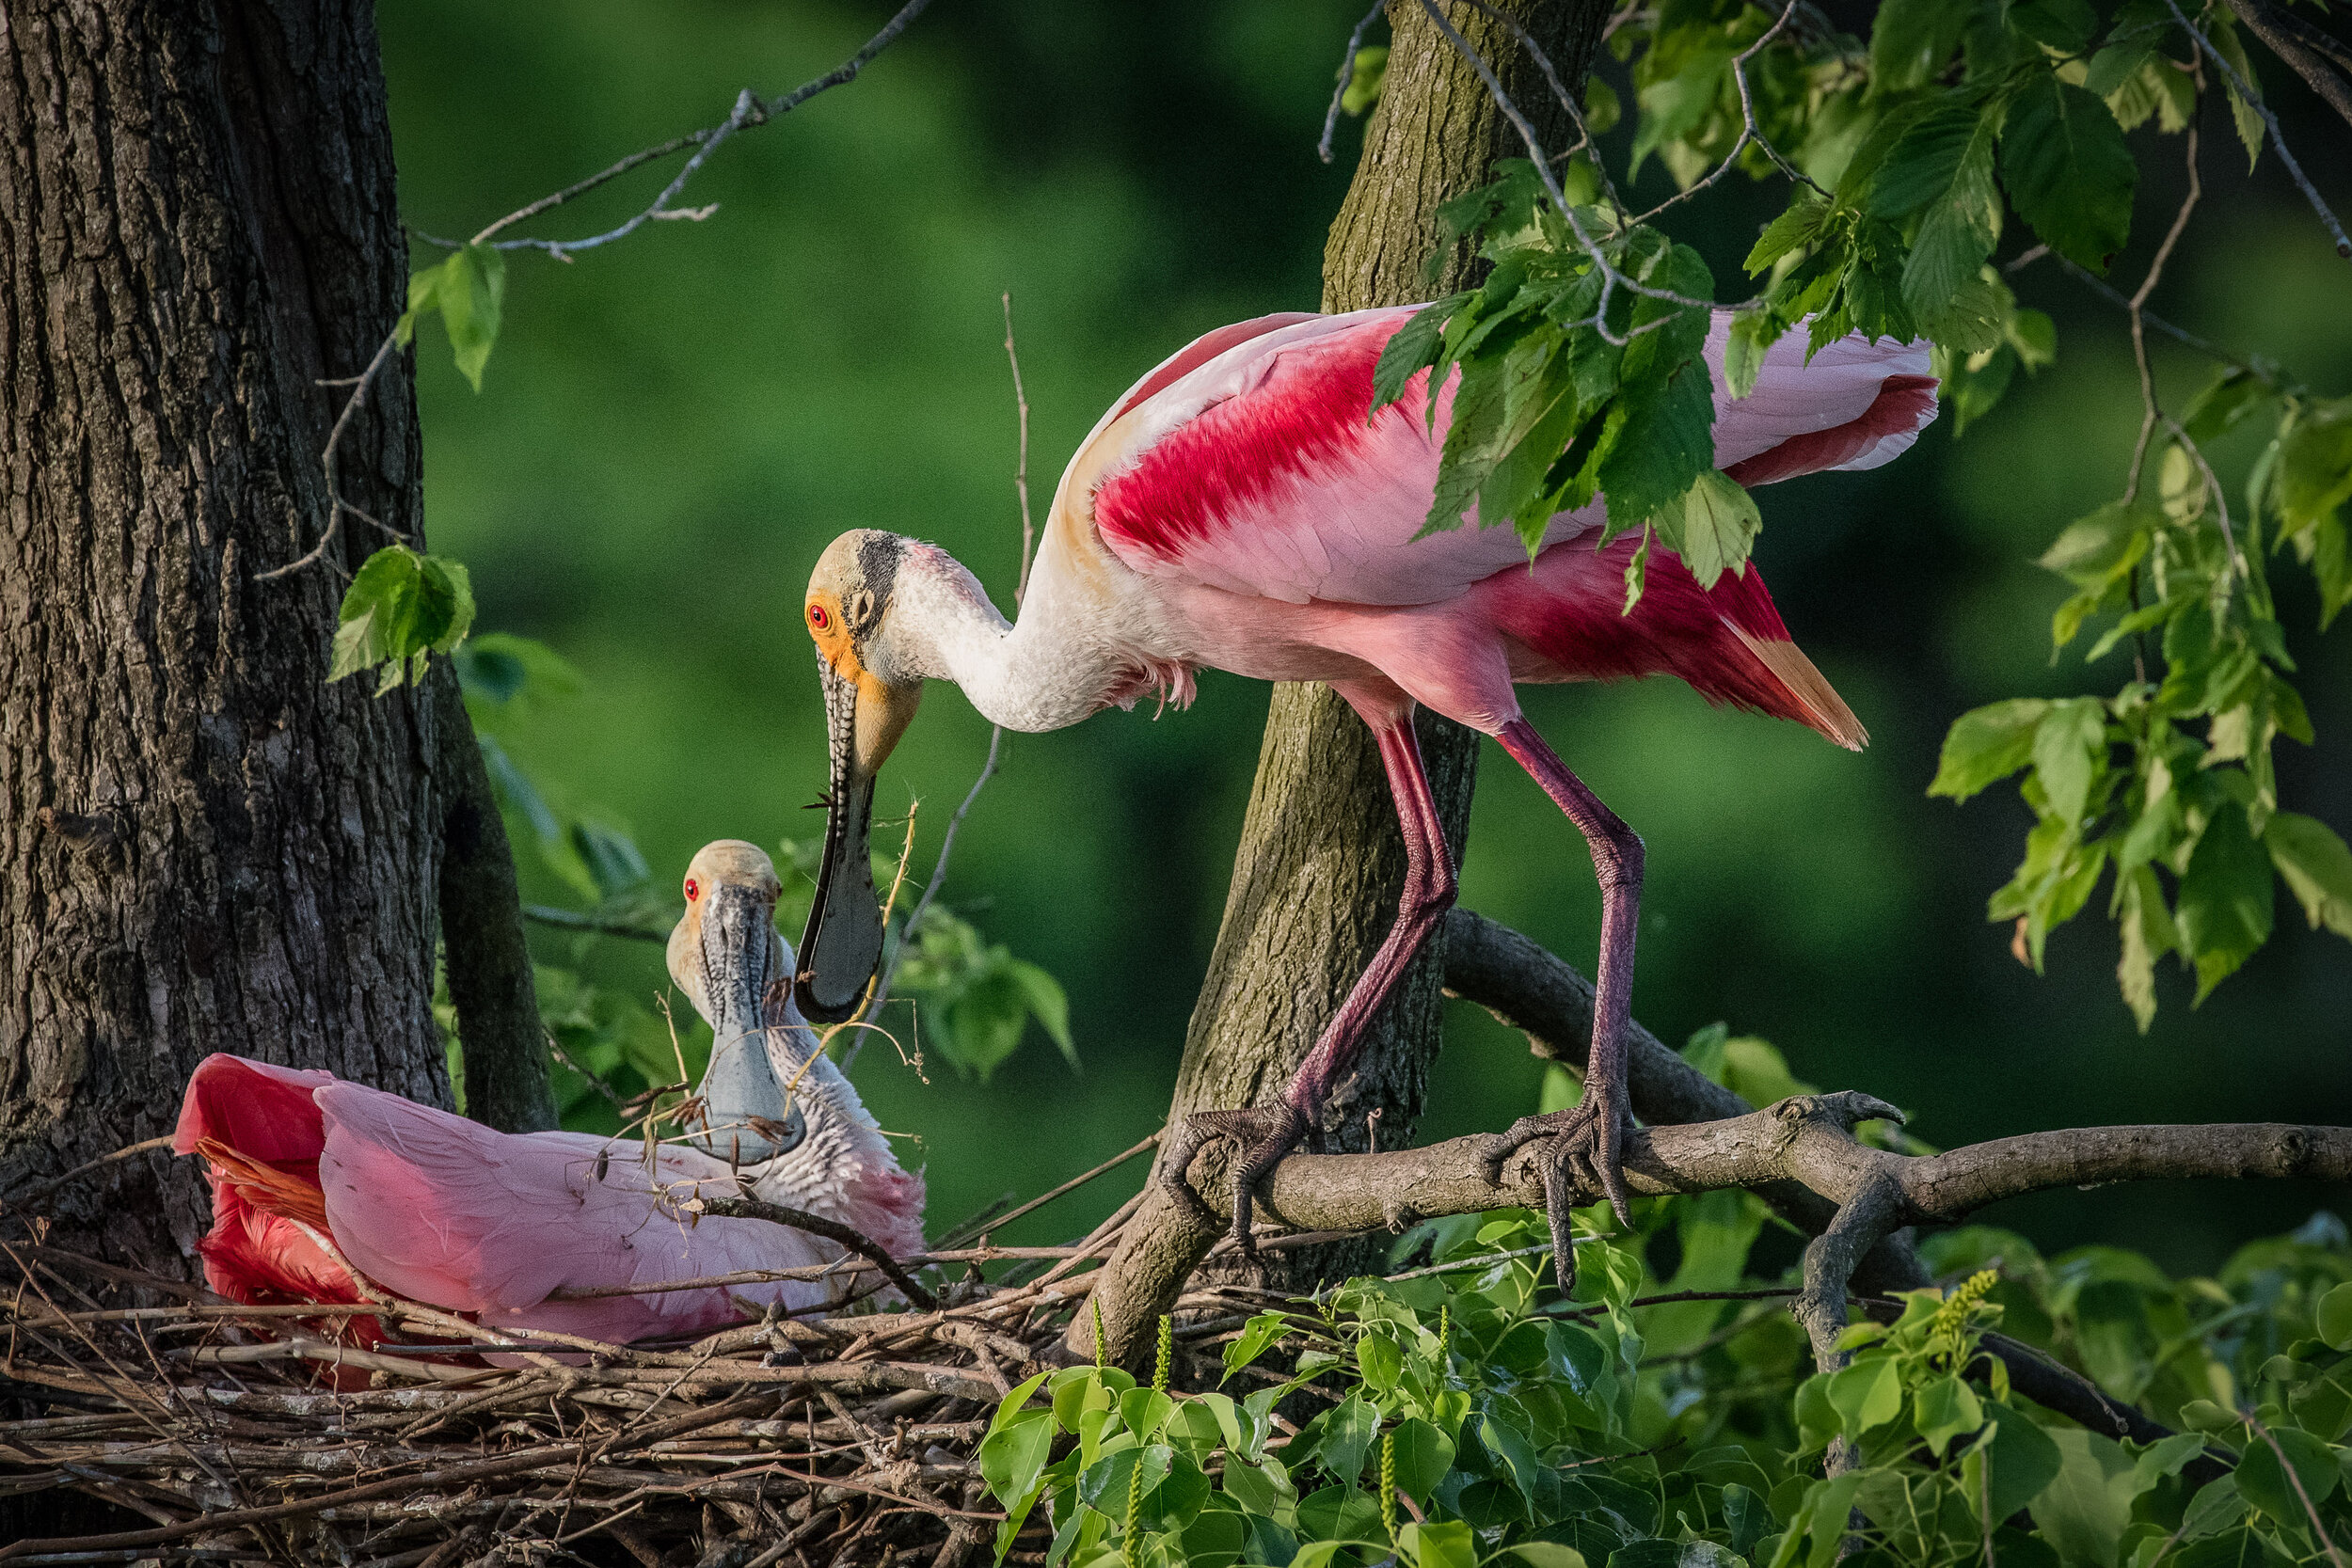 Male Roseate Spoonbill presenting a stick to the female on the nest